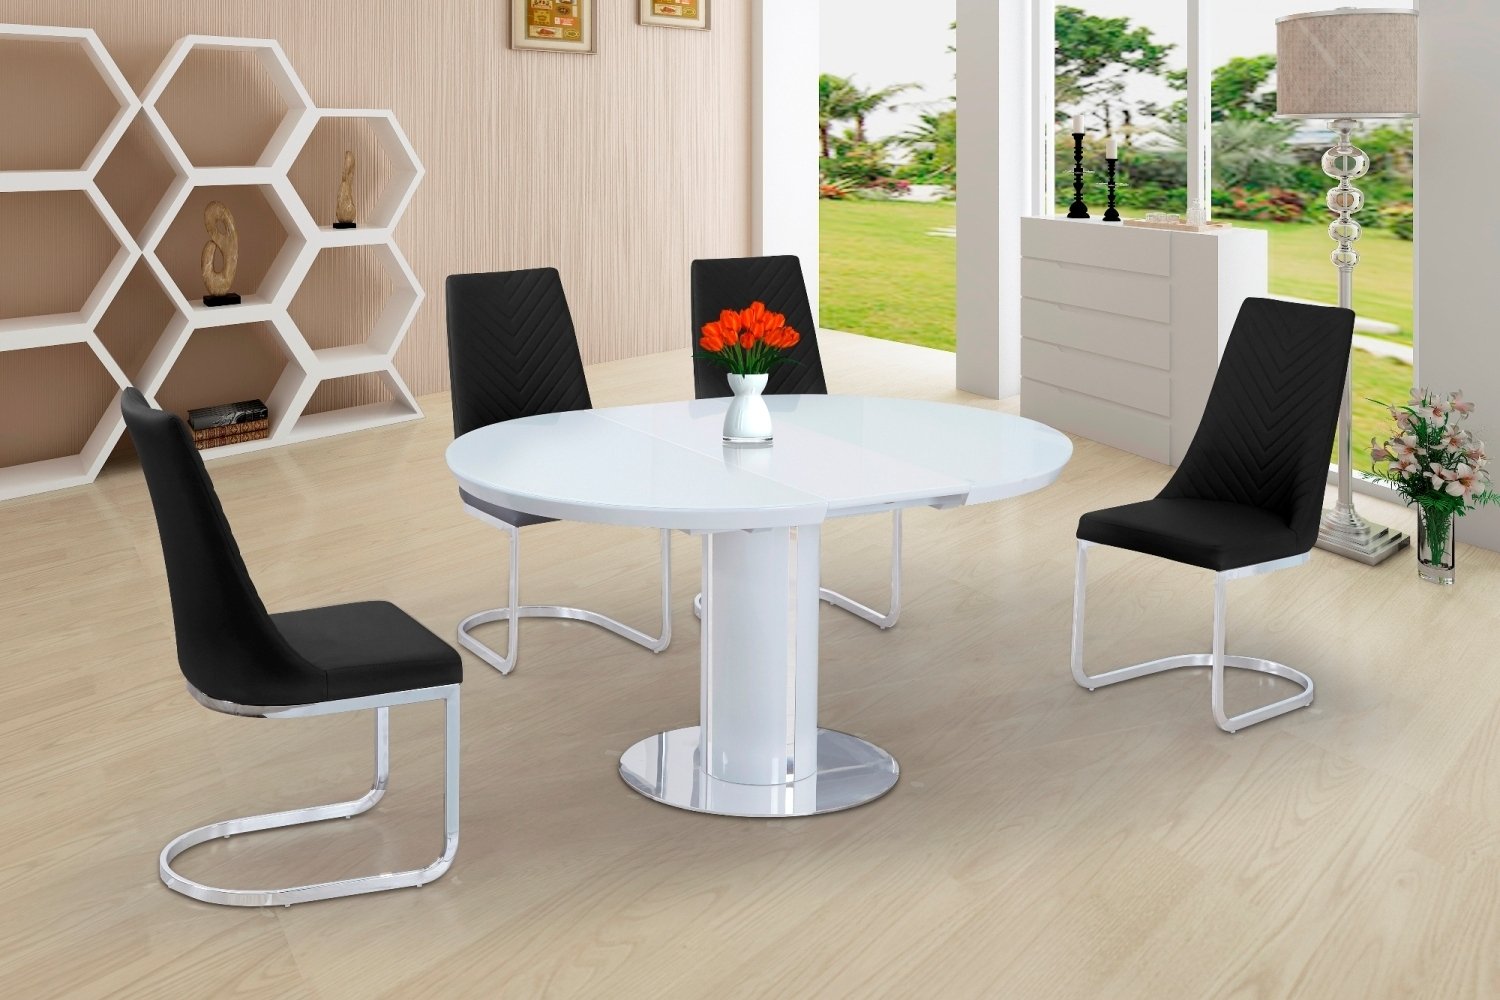 Chairs Set 4 High Gloss Kitchen Table, Round Black High Gloss Dining Table